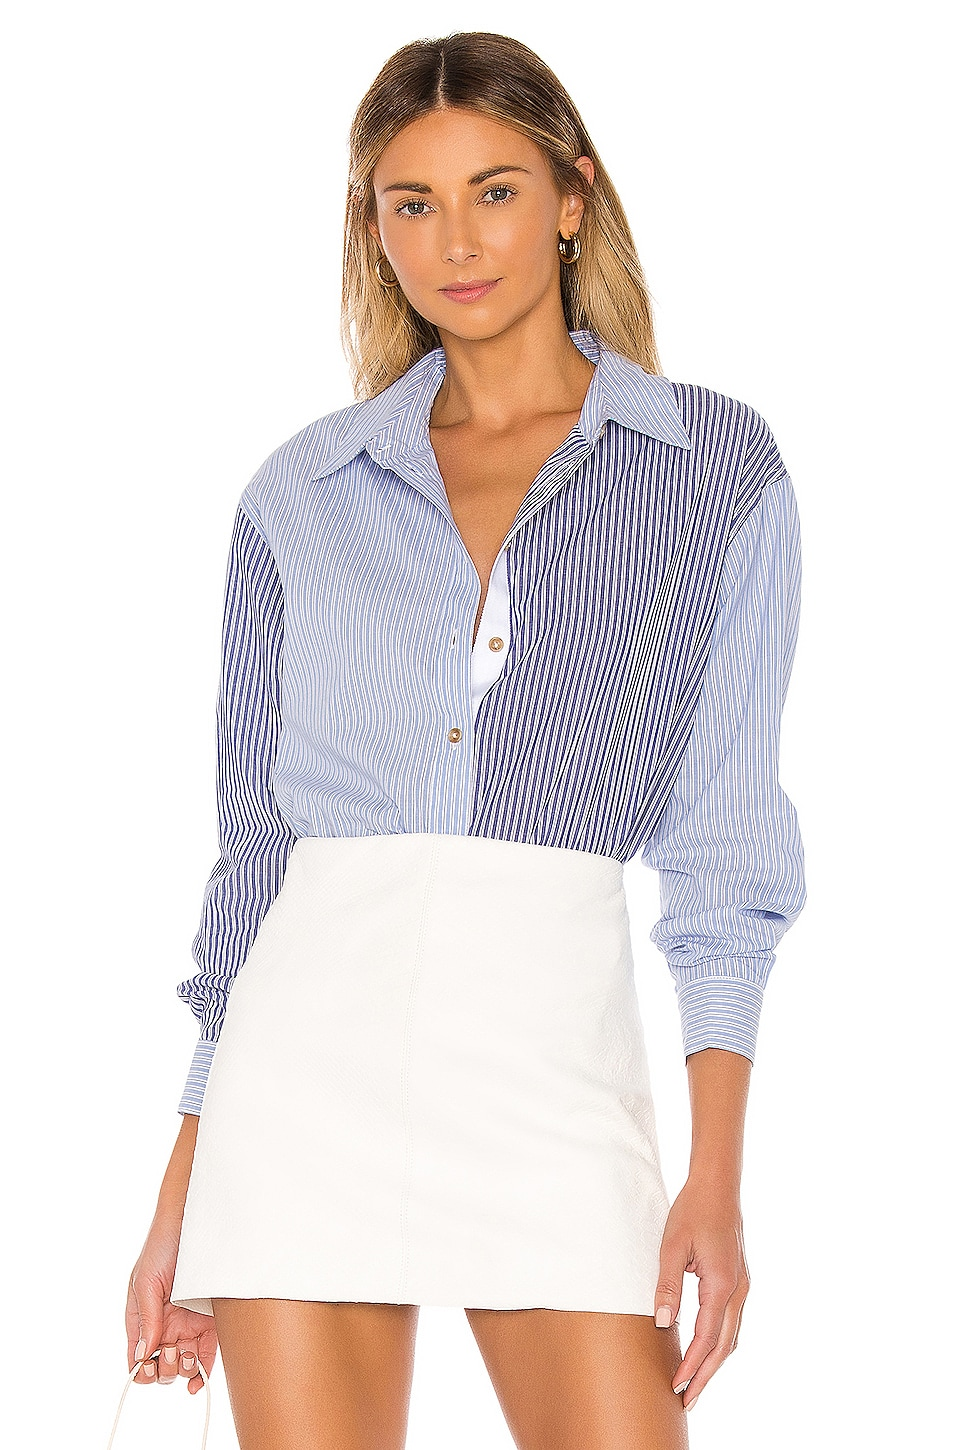 L'Academie The Blaise Top in Blue & White